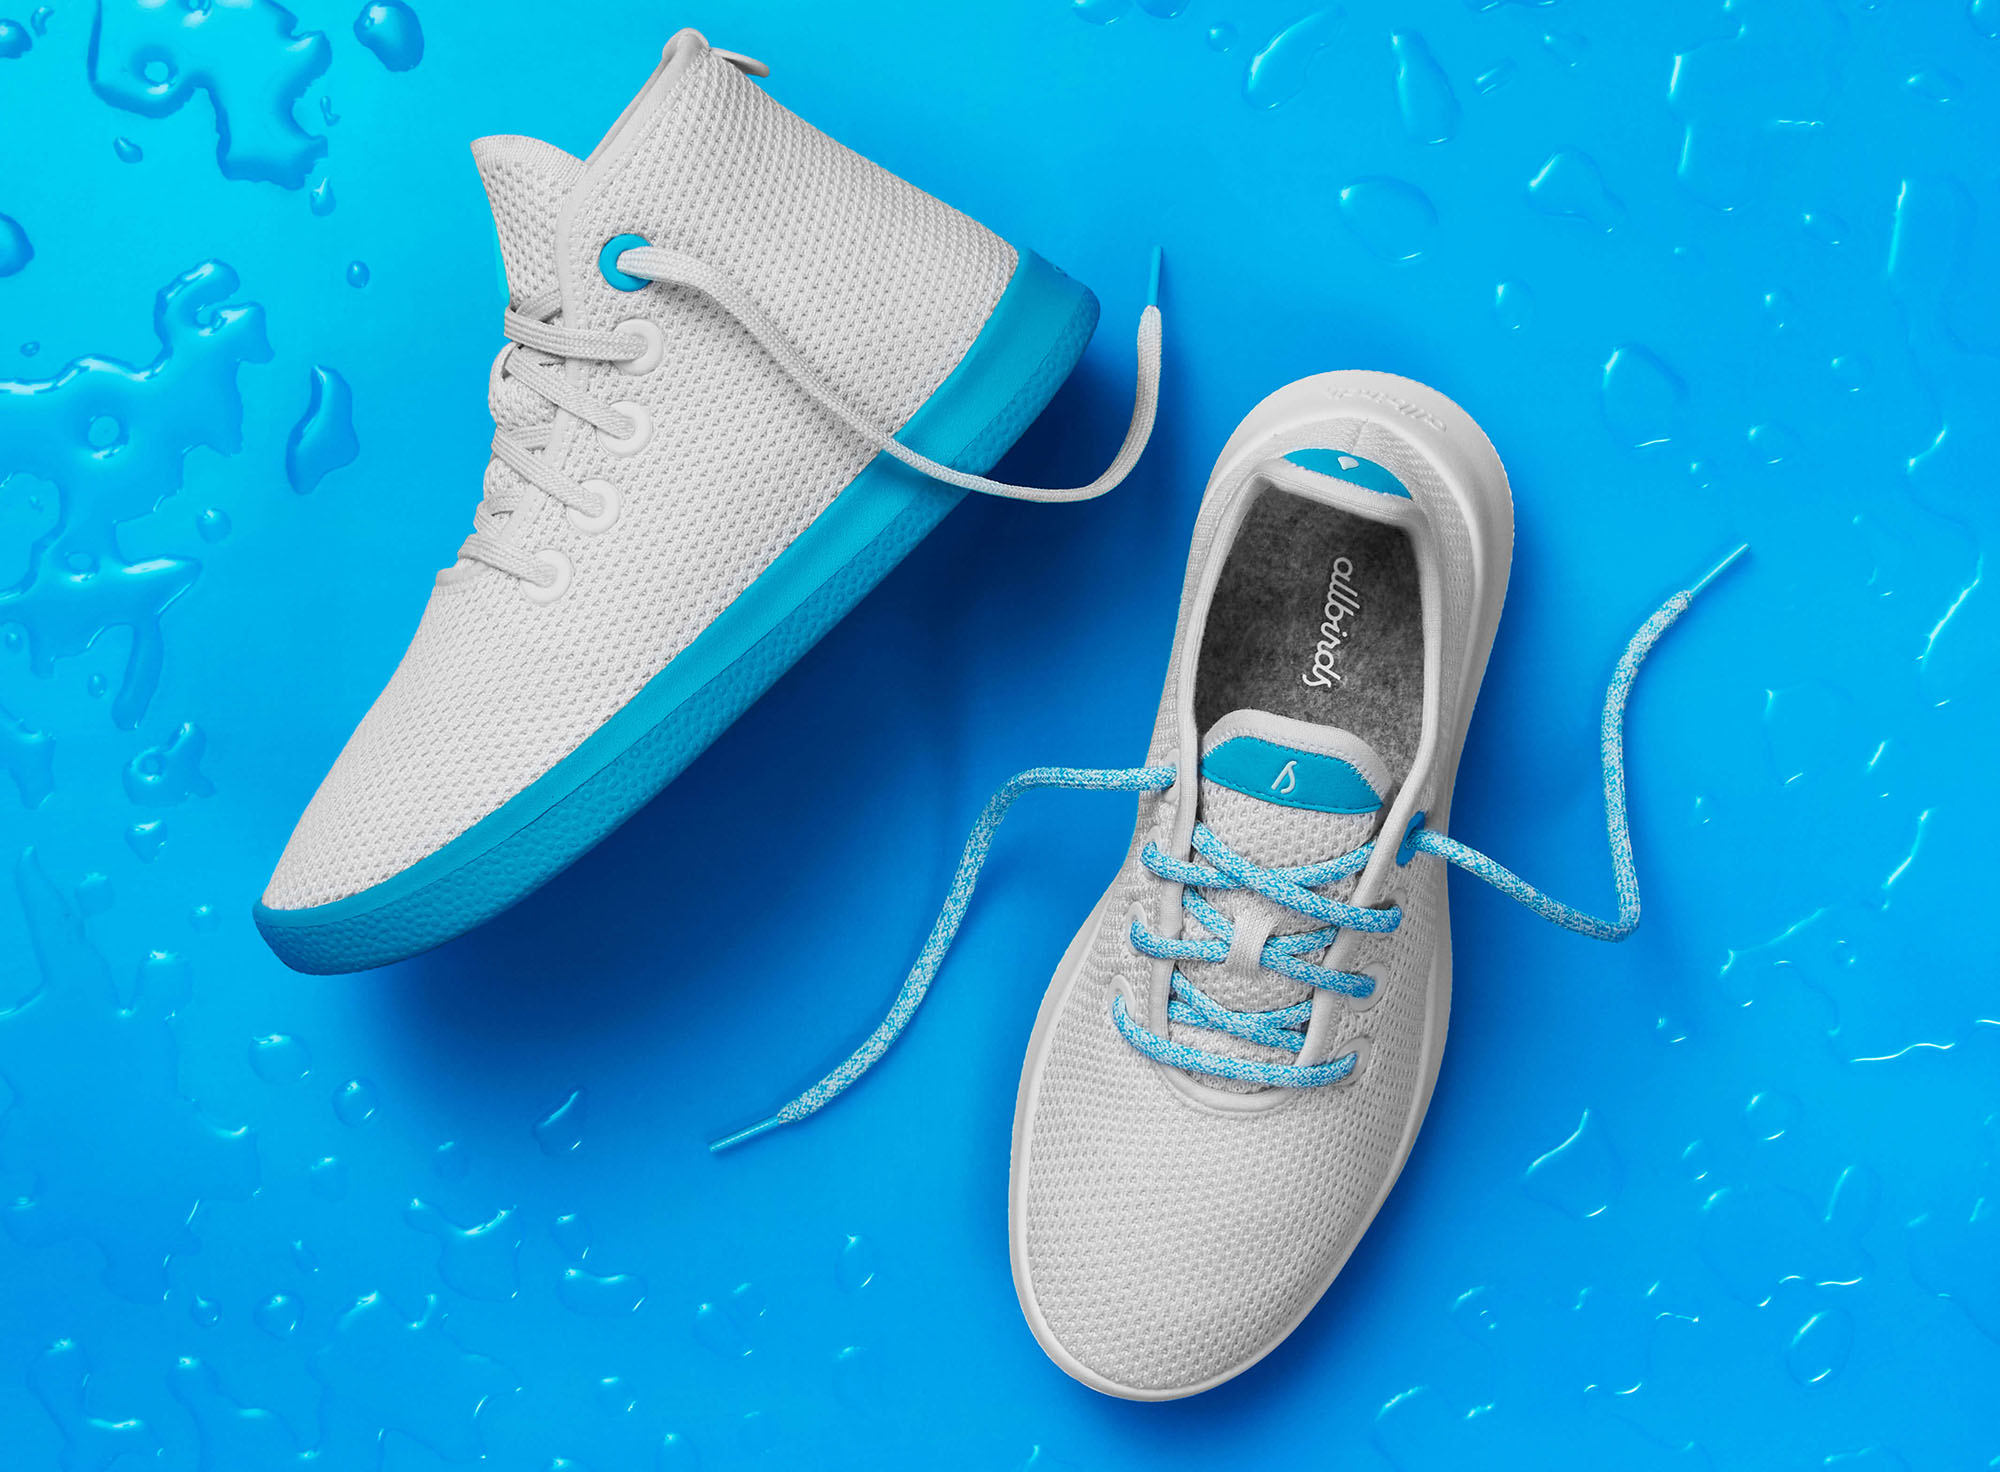 Allbirds' New Collab With Just Water Is for a Good Cause